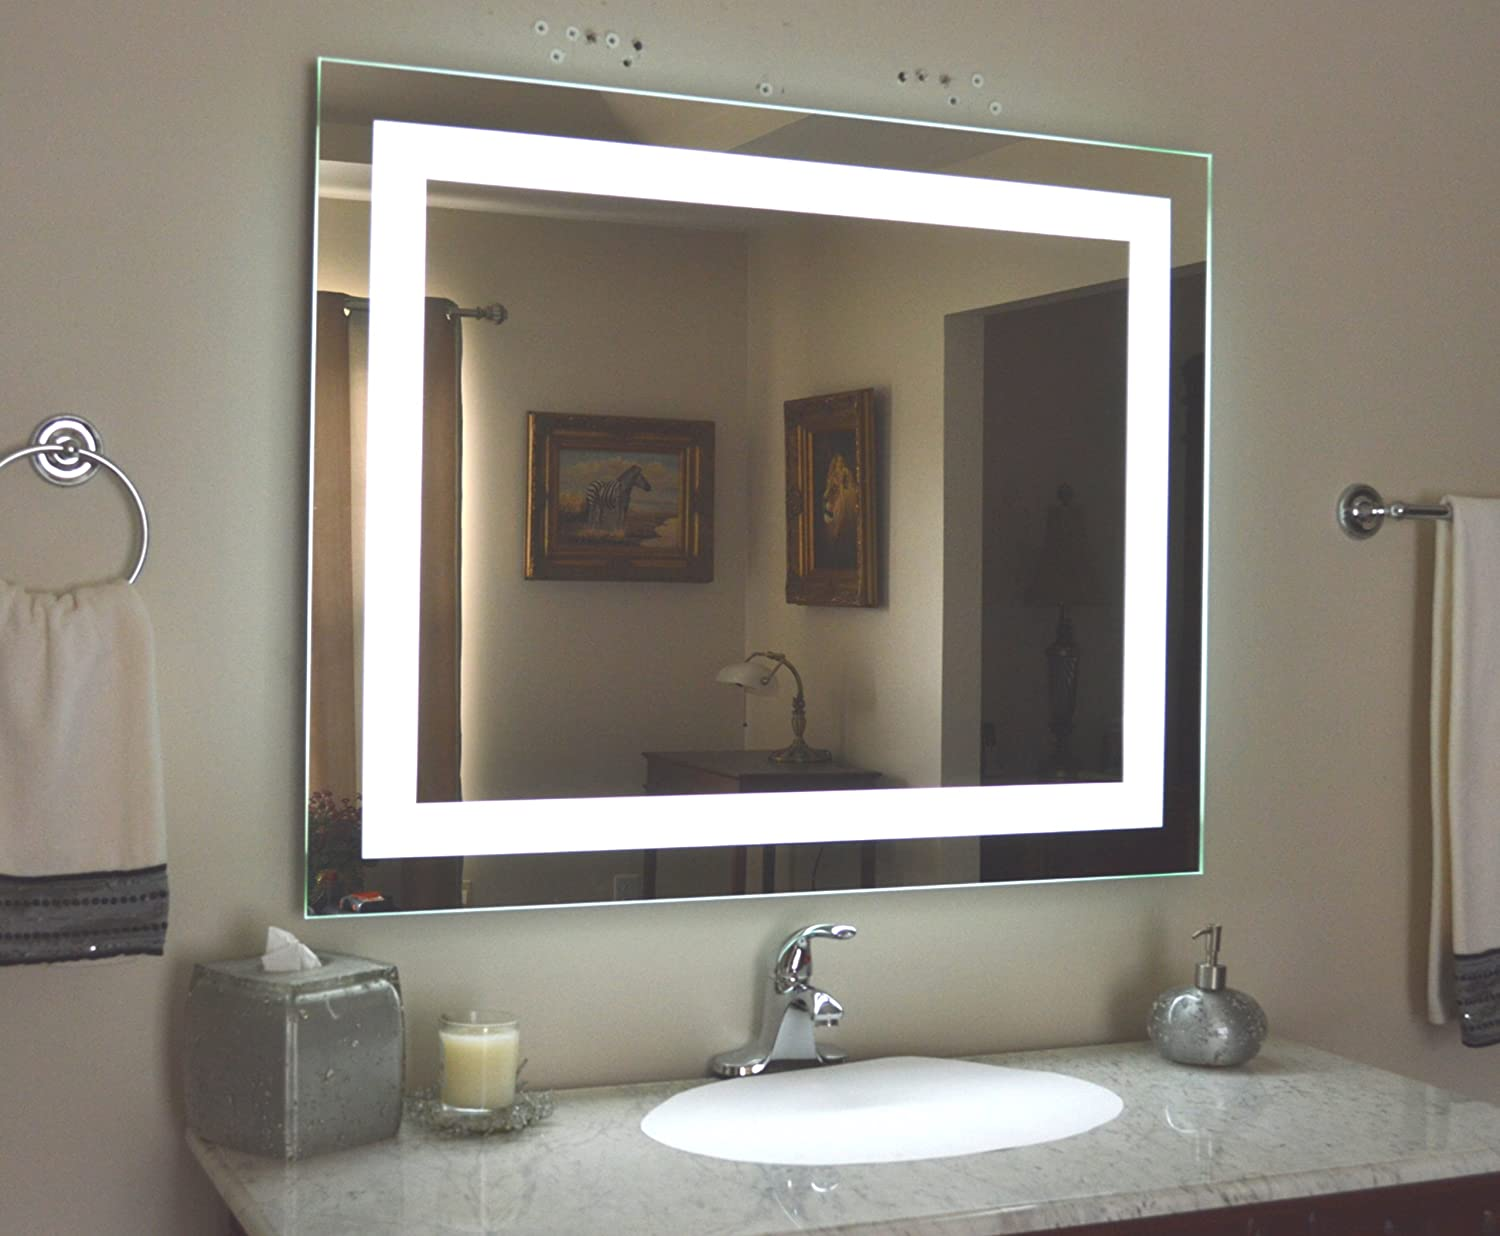 lighted wall mirror. amazon.com: wall mounted lighted vanity mirror led mam84032 commercial grade 40: home \u0026 kitchen t